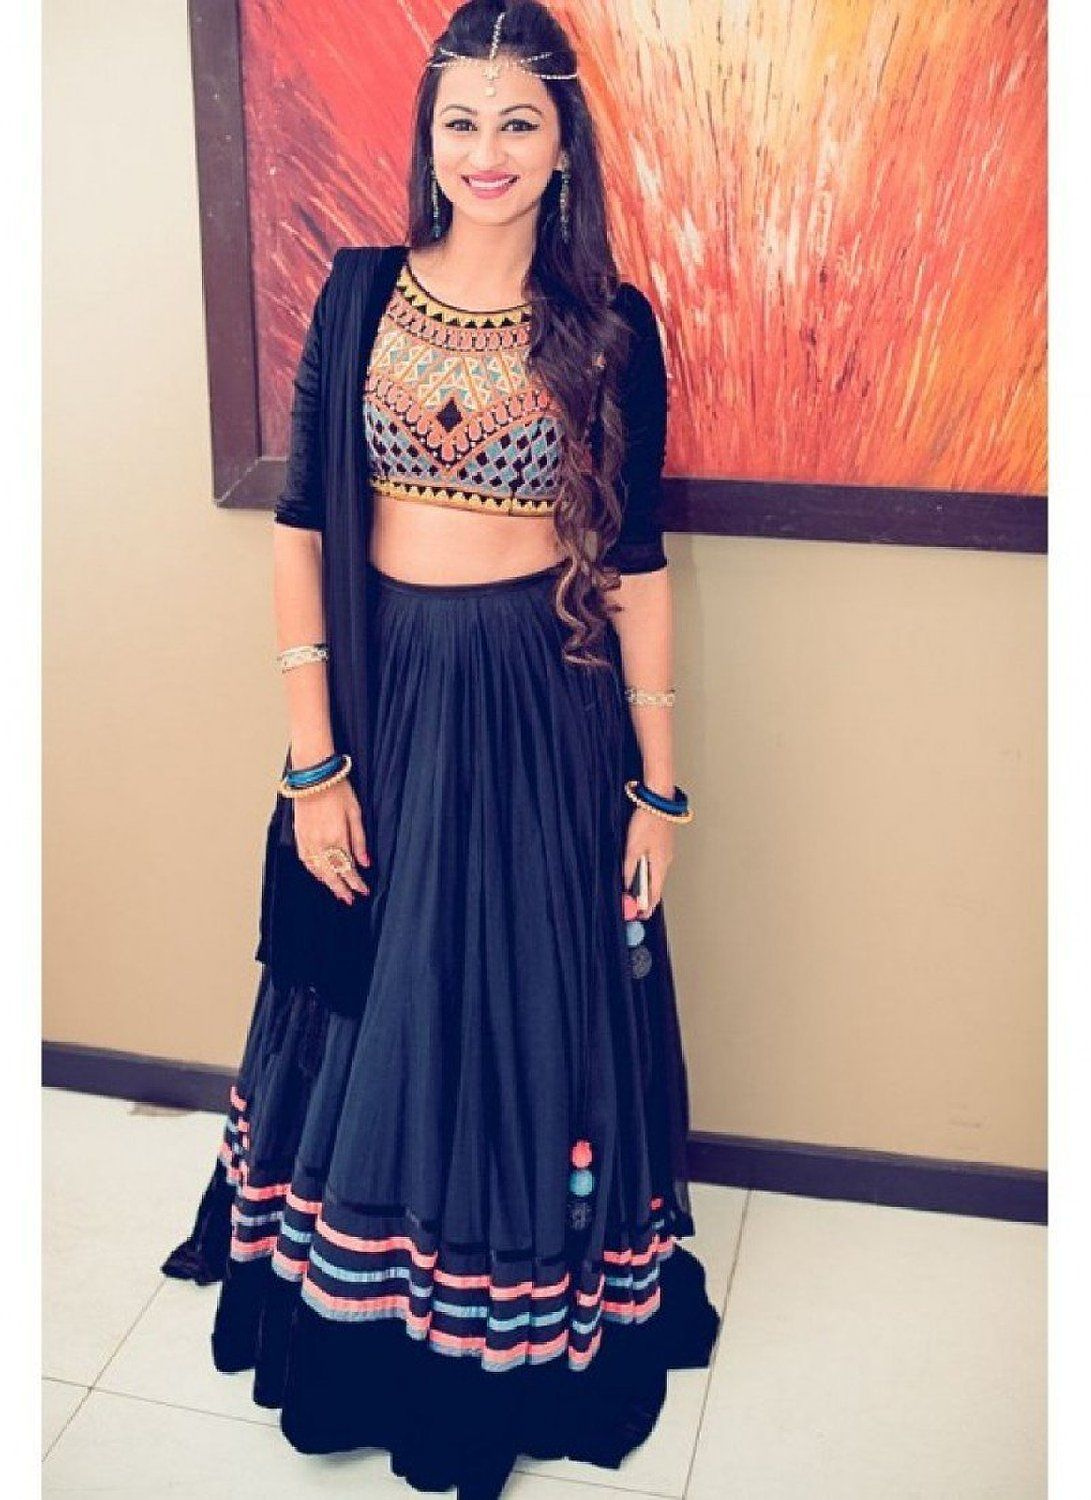 a54a864b6e0304 Shop L-06 Navy Blue Georgette Lehenga by Exclusive Fashion online. Largest  collection of Latest Lehangas online. ✻ 100% Genuine Products ✻ Easy  Returns ...